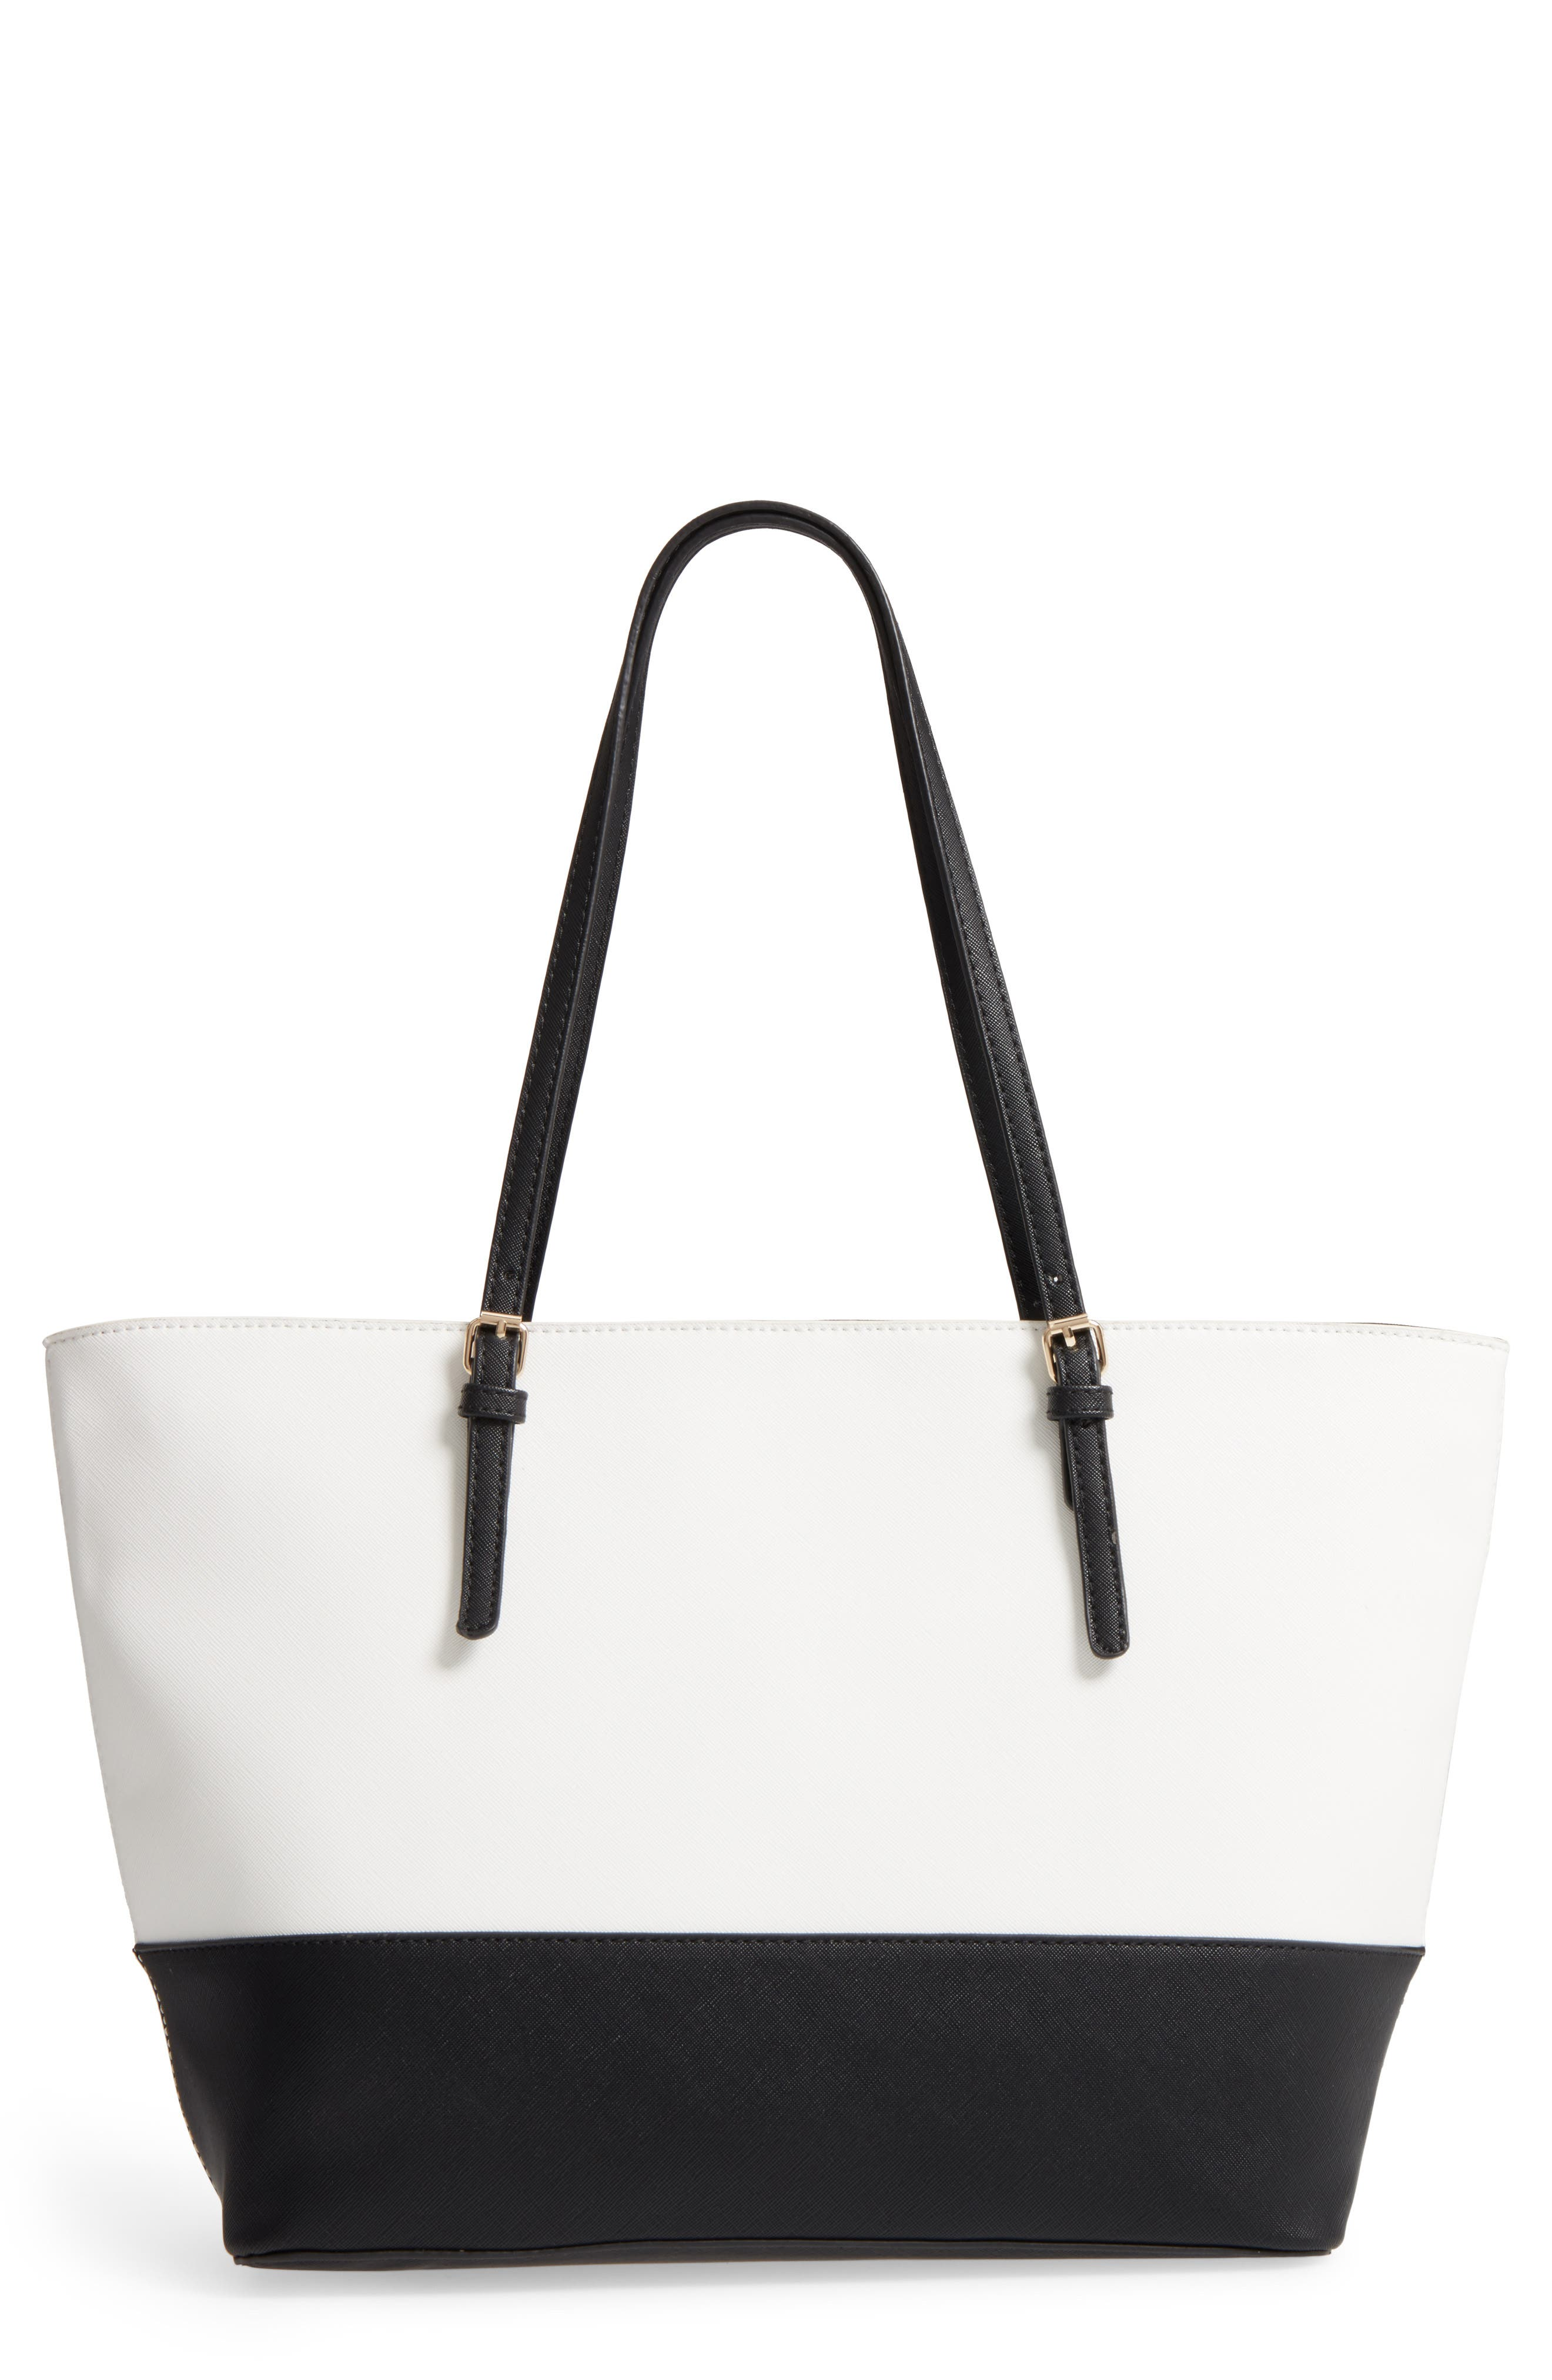 Emperia Michelle Faux Leather Tote